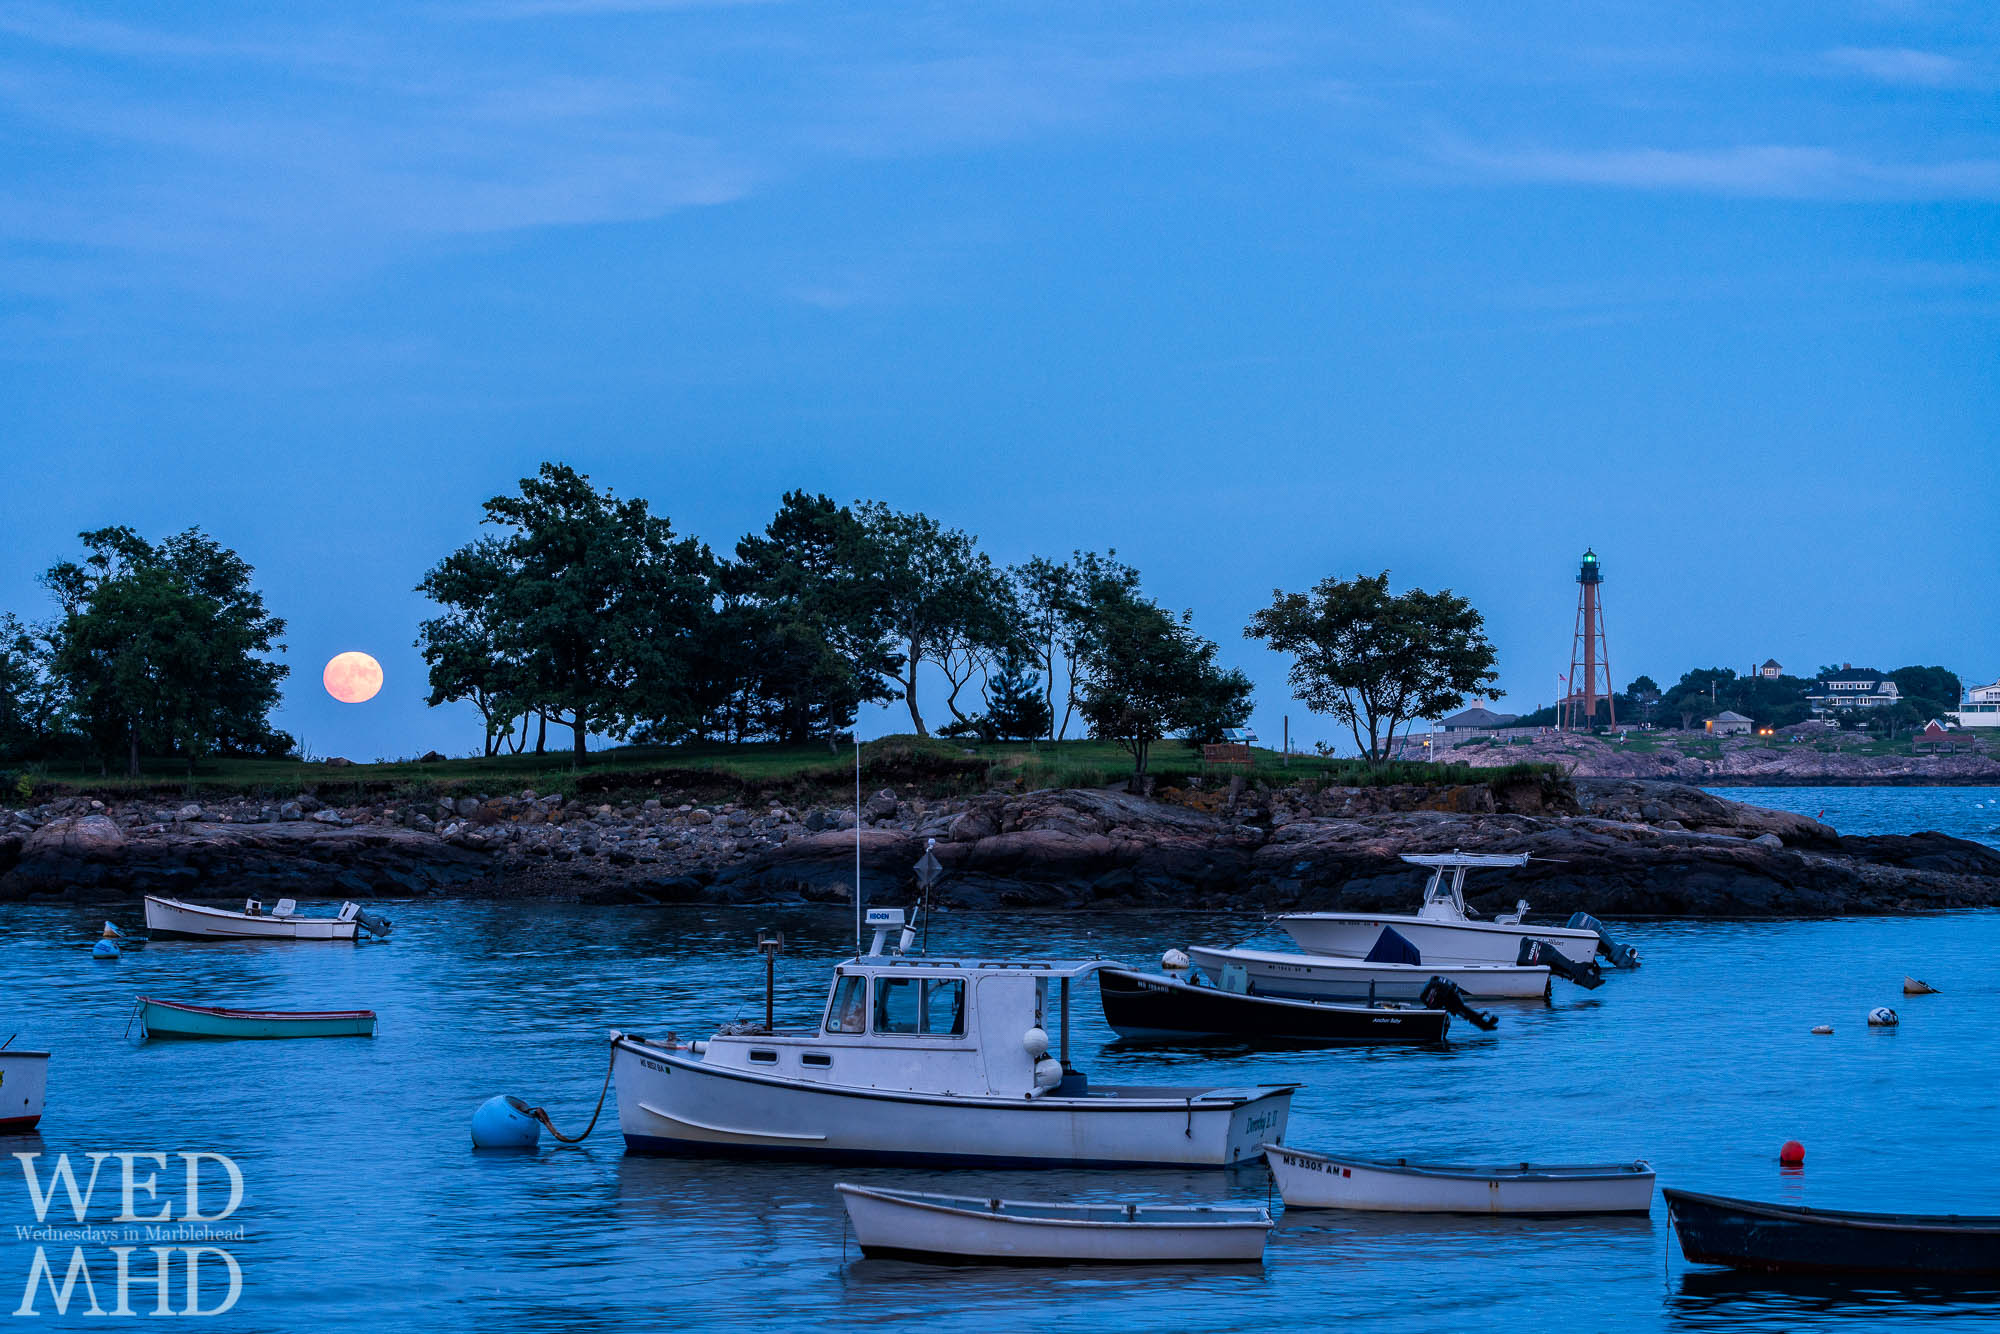 Tonight's blue moon rose against a blue sky over Gerry Island and boats moored in Little Harbor in Marblehead's Barnegat neighborhood